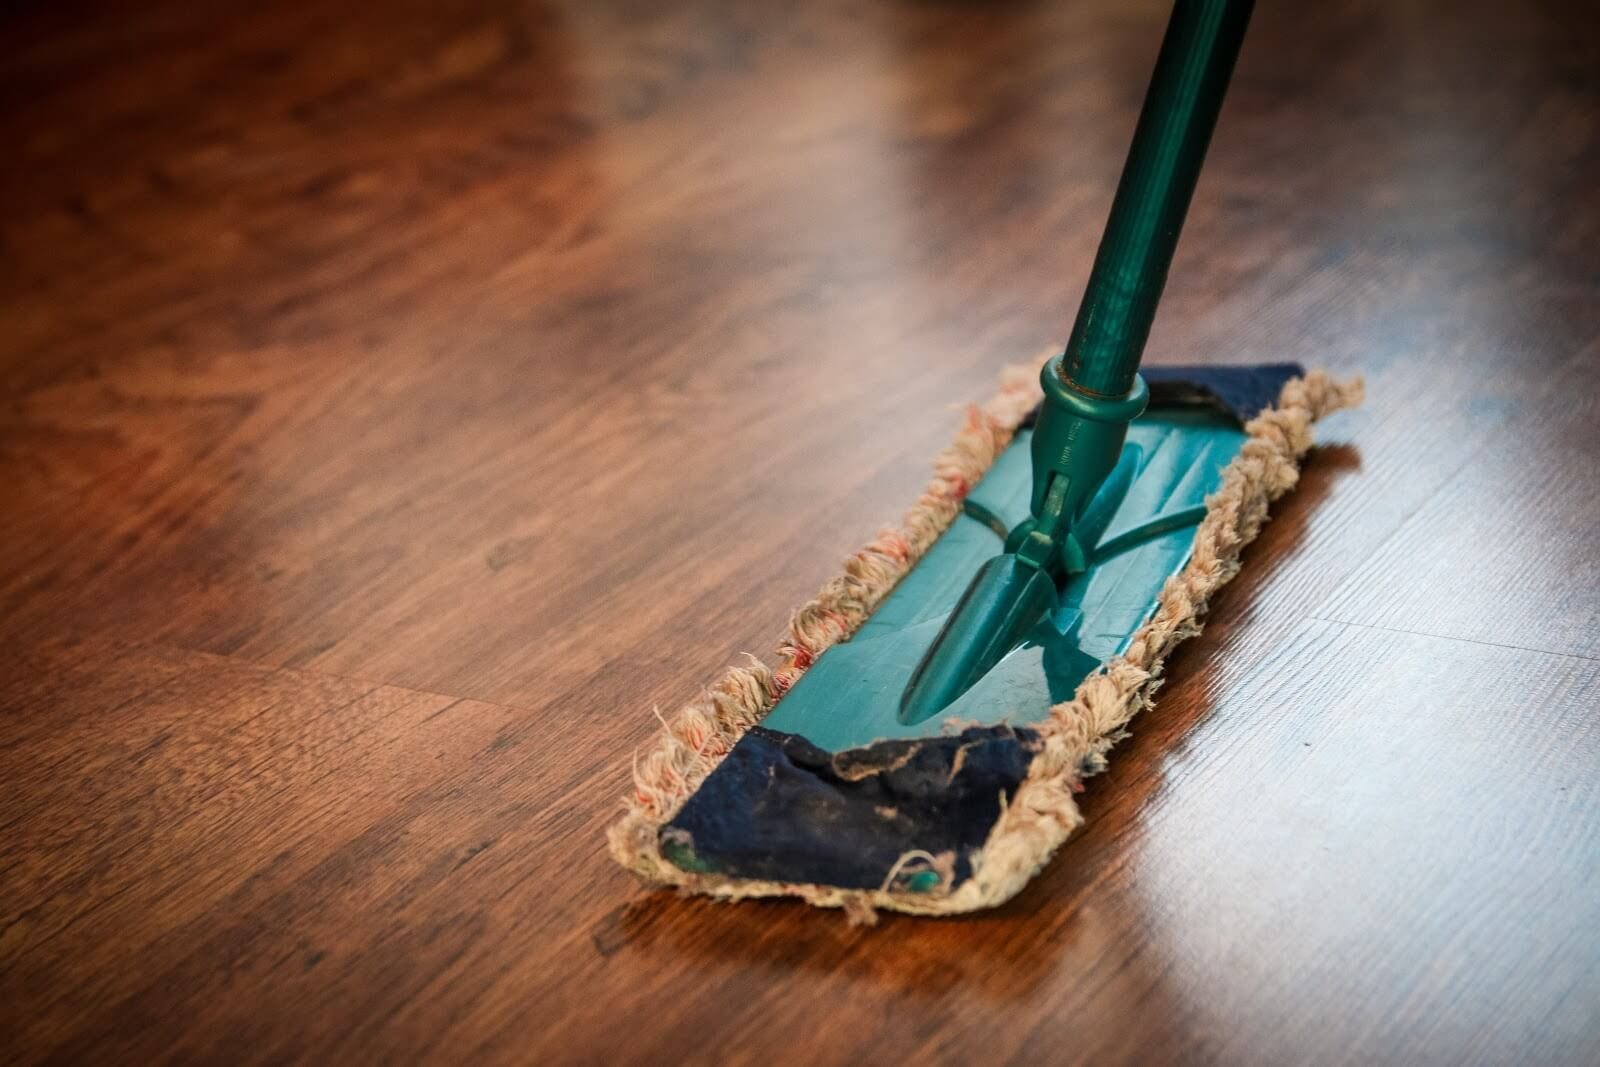 Close-up of a mop on a hardwood floor